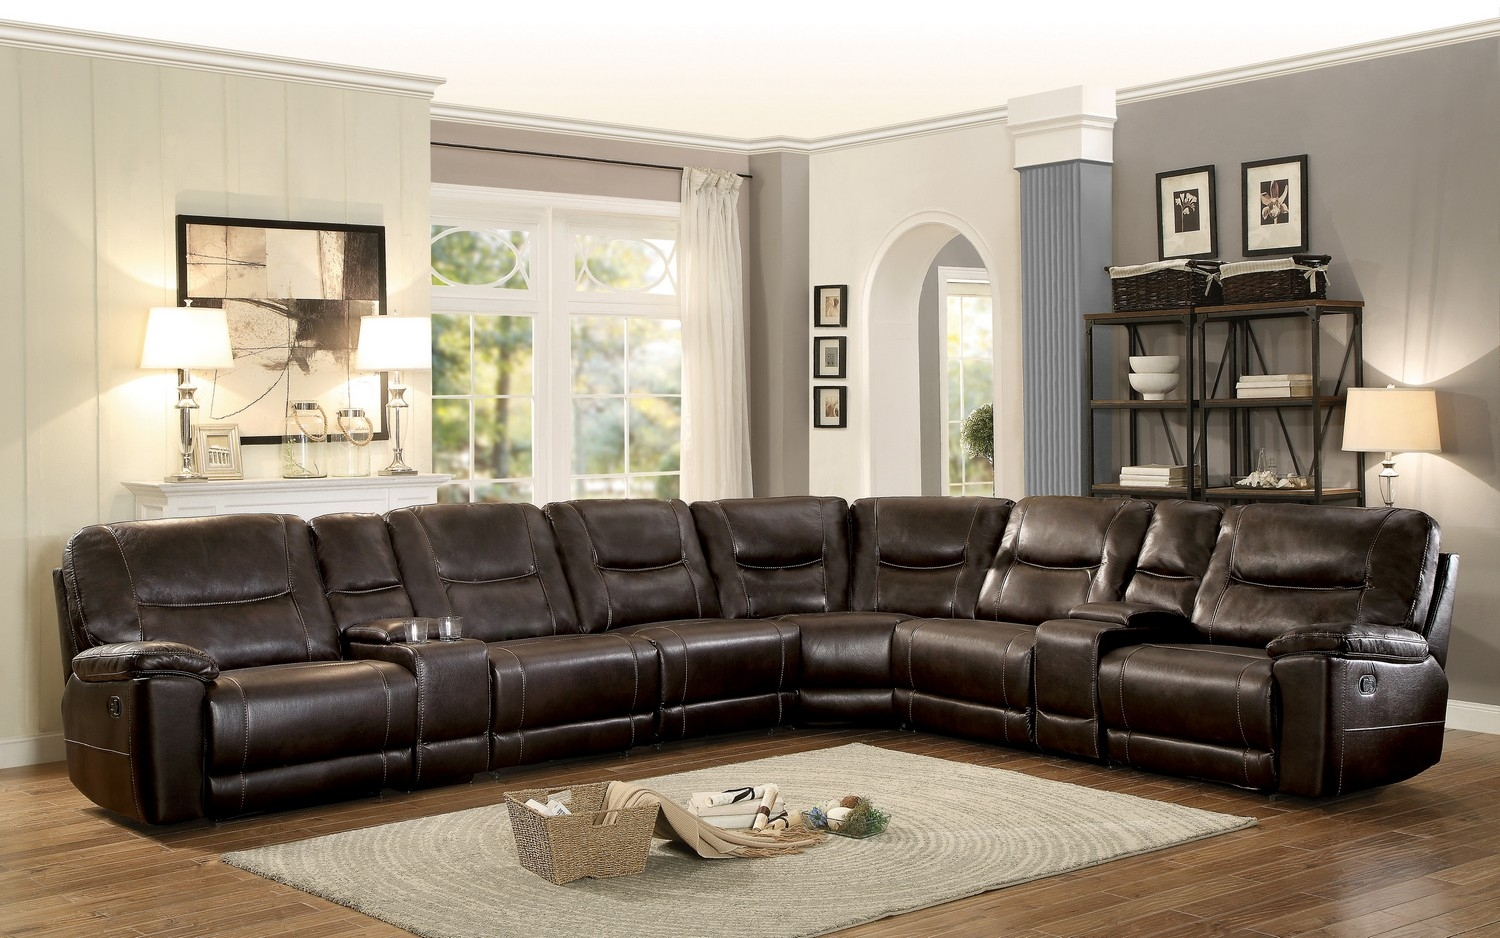 albany industries leather sofa colonial bed sectional ideas